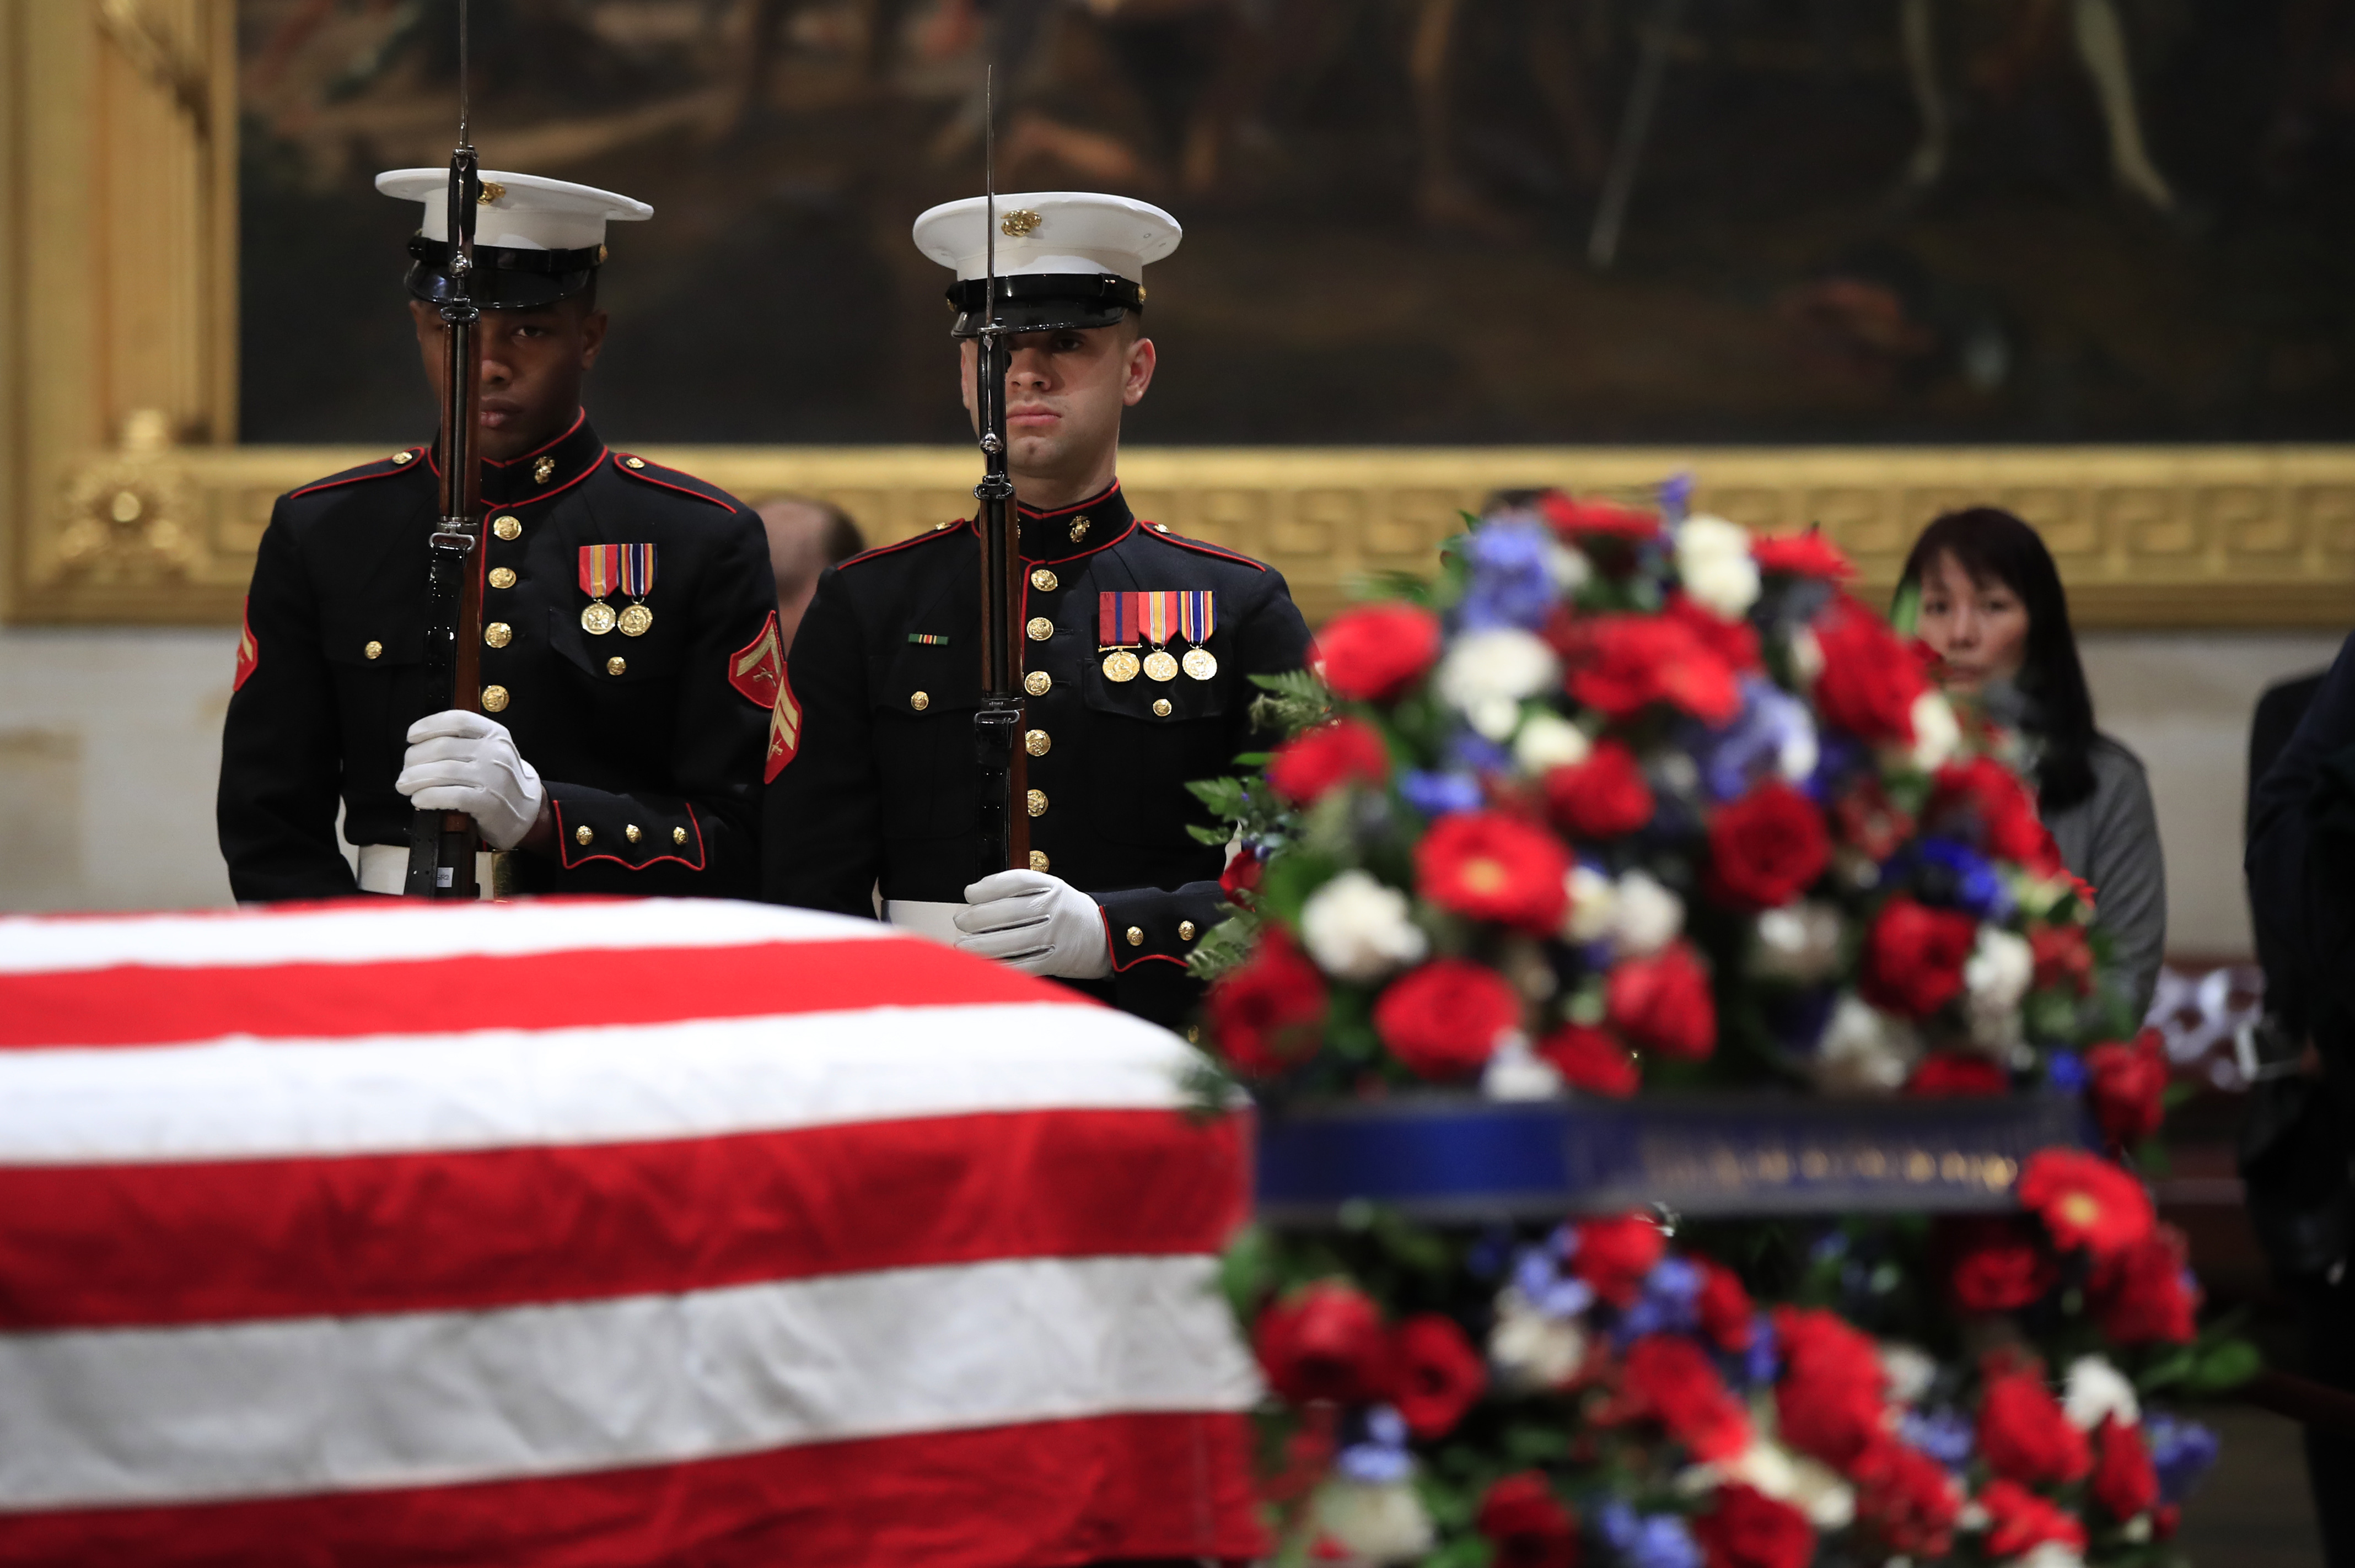 U.S. Marine Corps honor guard execute a rifle salute during the changing of the guard at the Capitol Rotunda where former President George H.W. Bush lies in state Wednesday, Dec. 5, 2018. (AP Photo/Manuel Balce Ceneta)